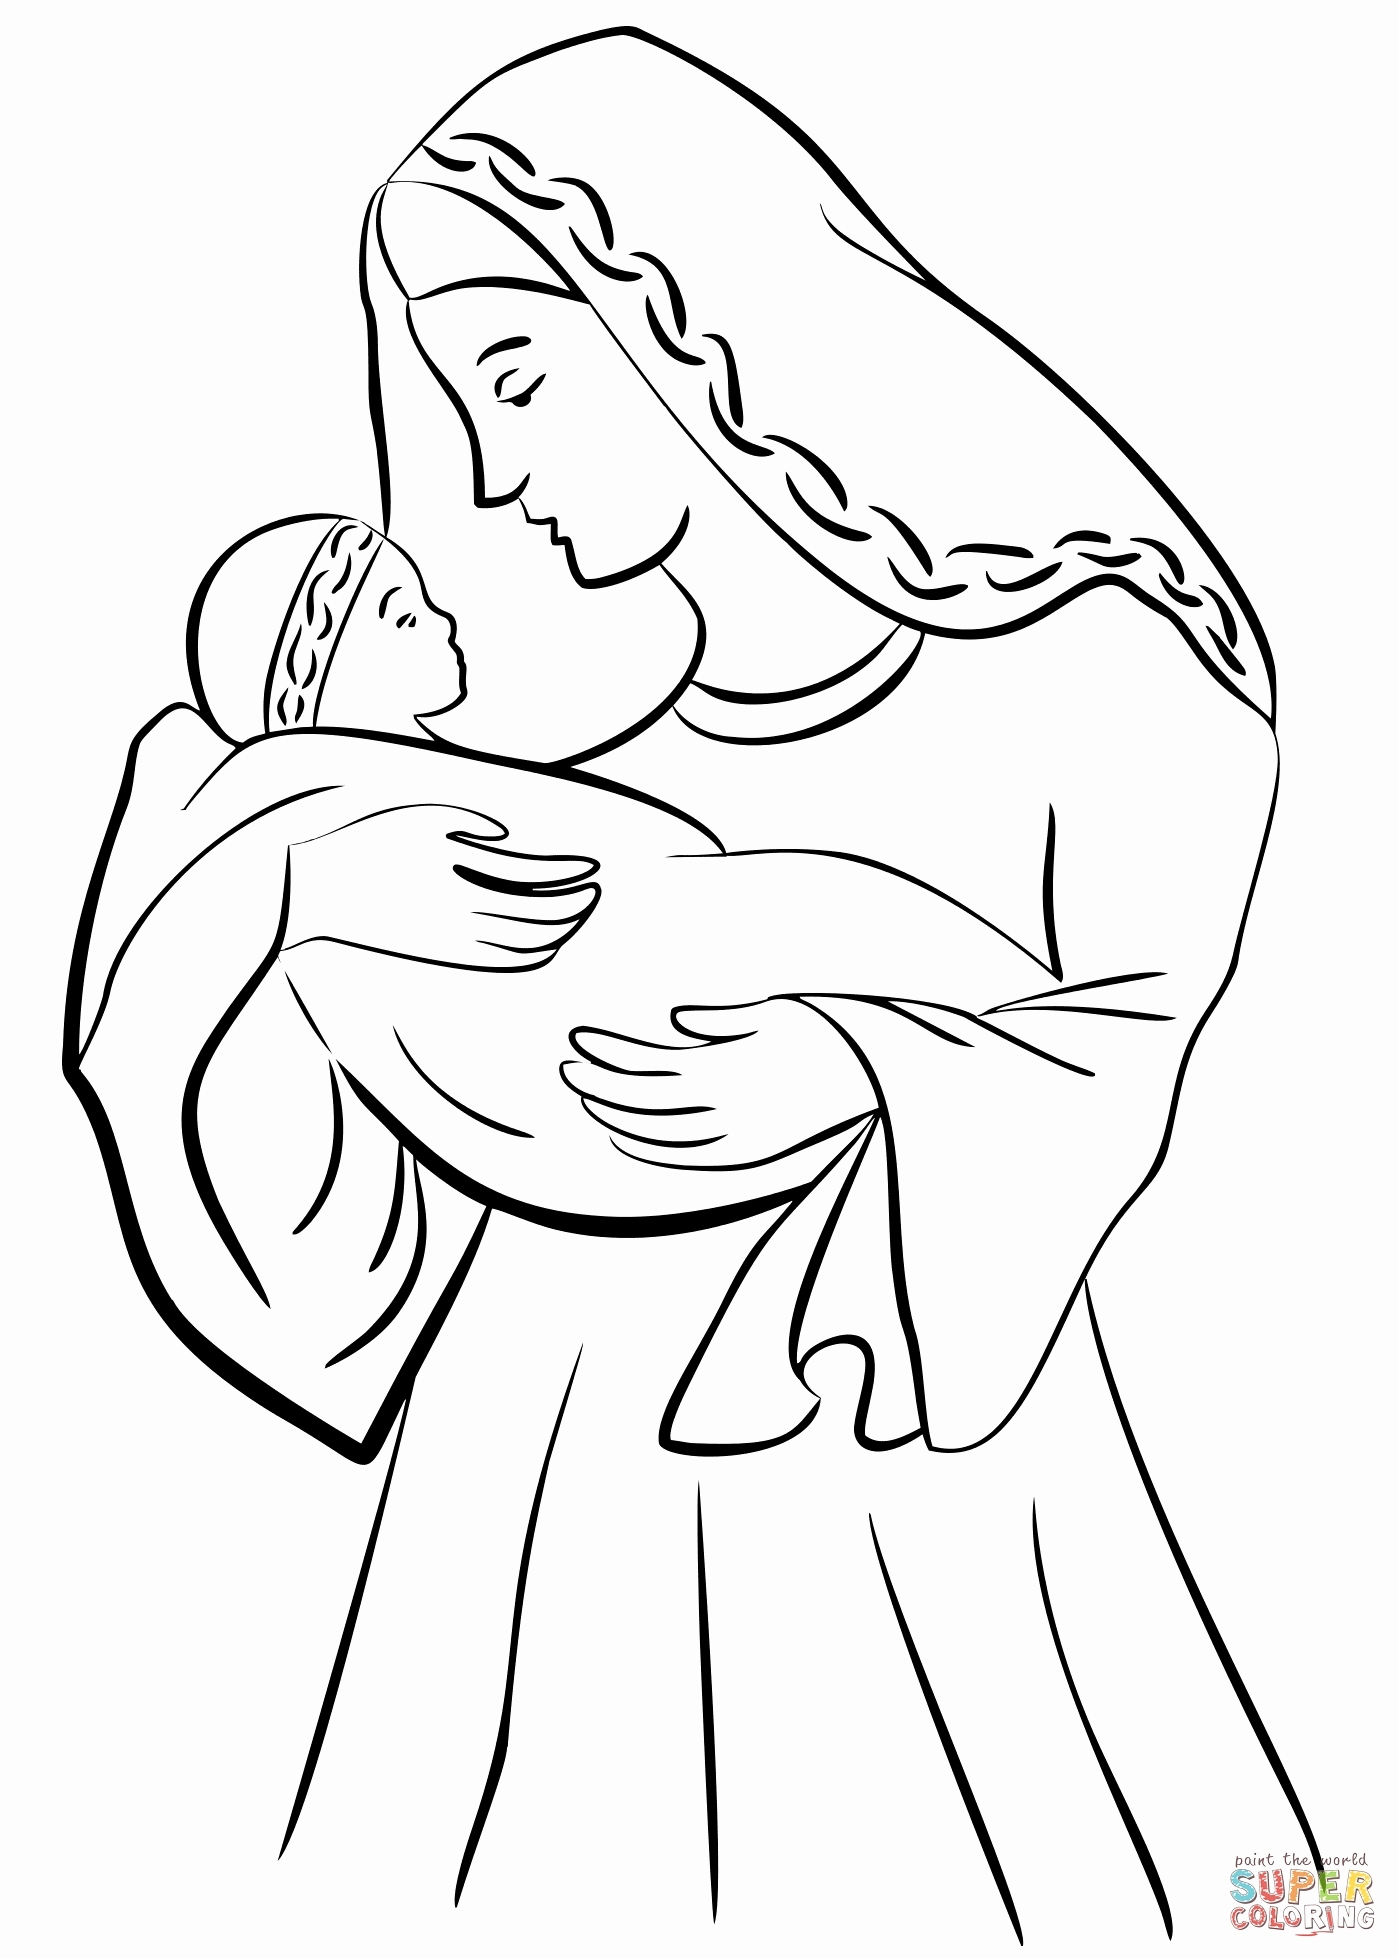 coloring pages baby jesus in manger coloring pages of jesus in the manger at getcoloringscom jesus baby coloring in manger pages